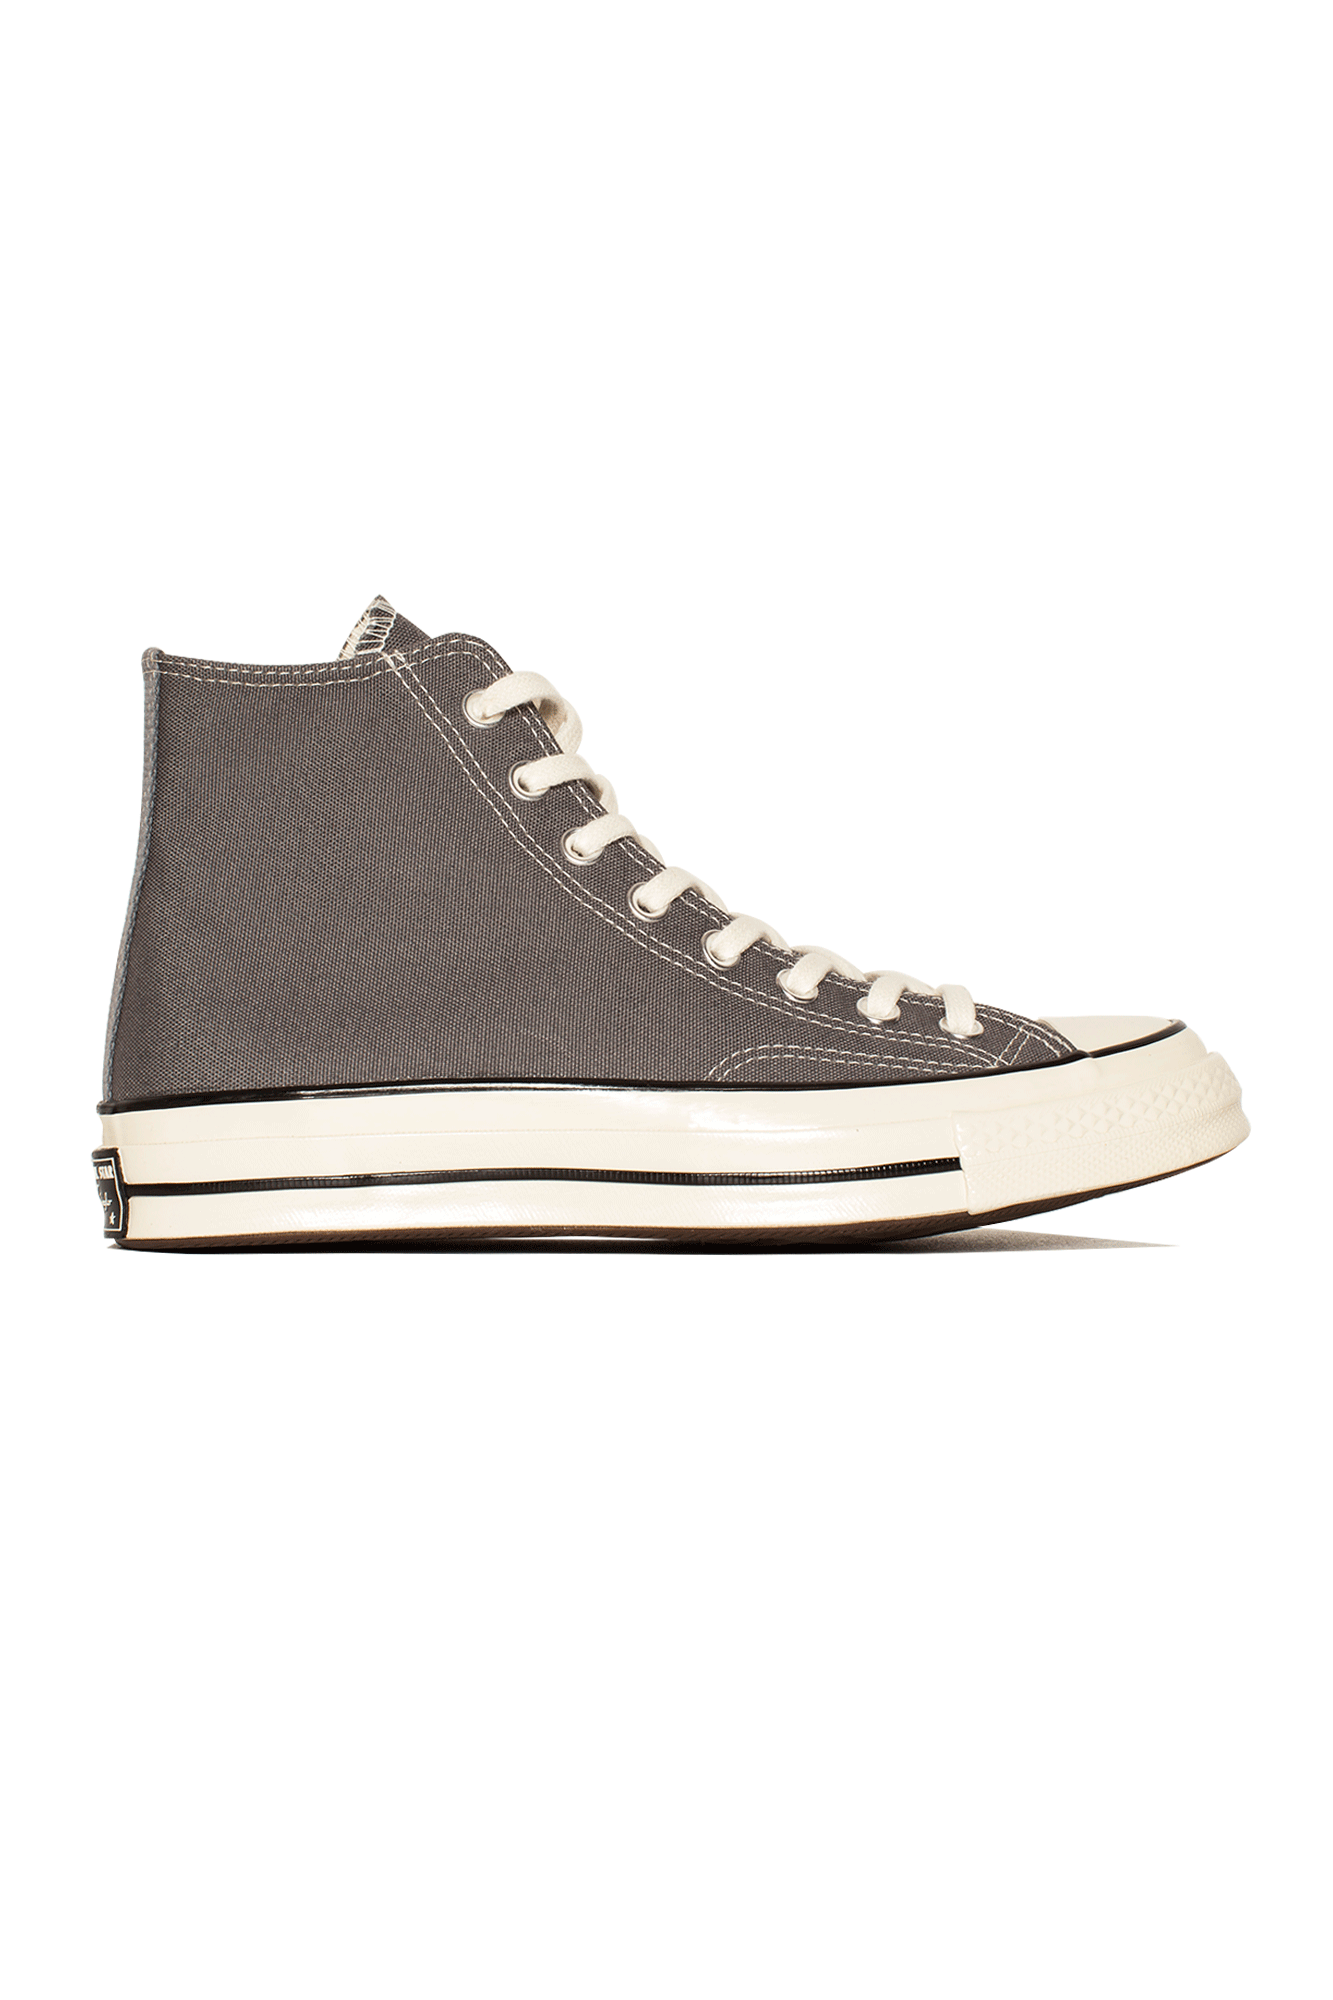 Converse Sneakers Chuck 70 HI Grigio 164946C#000#048#4,5 - One Block Down